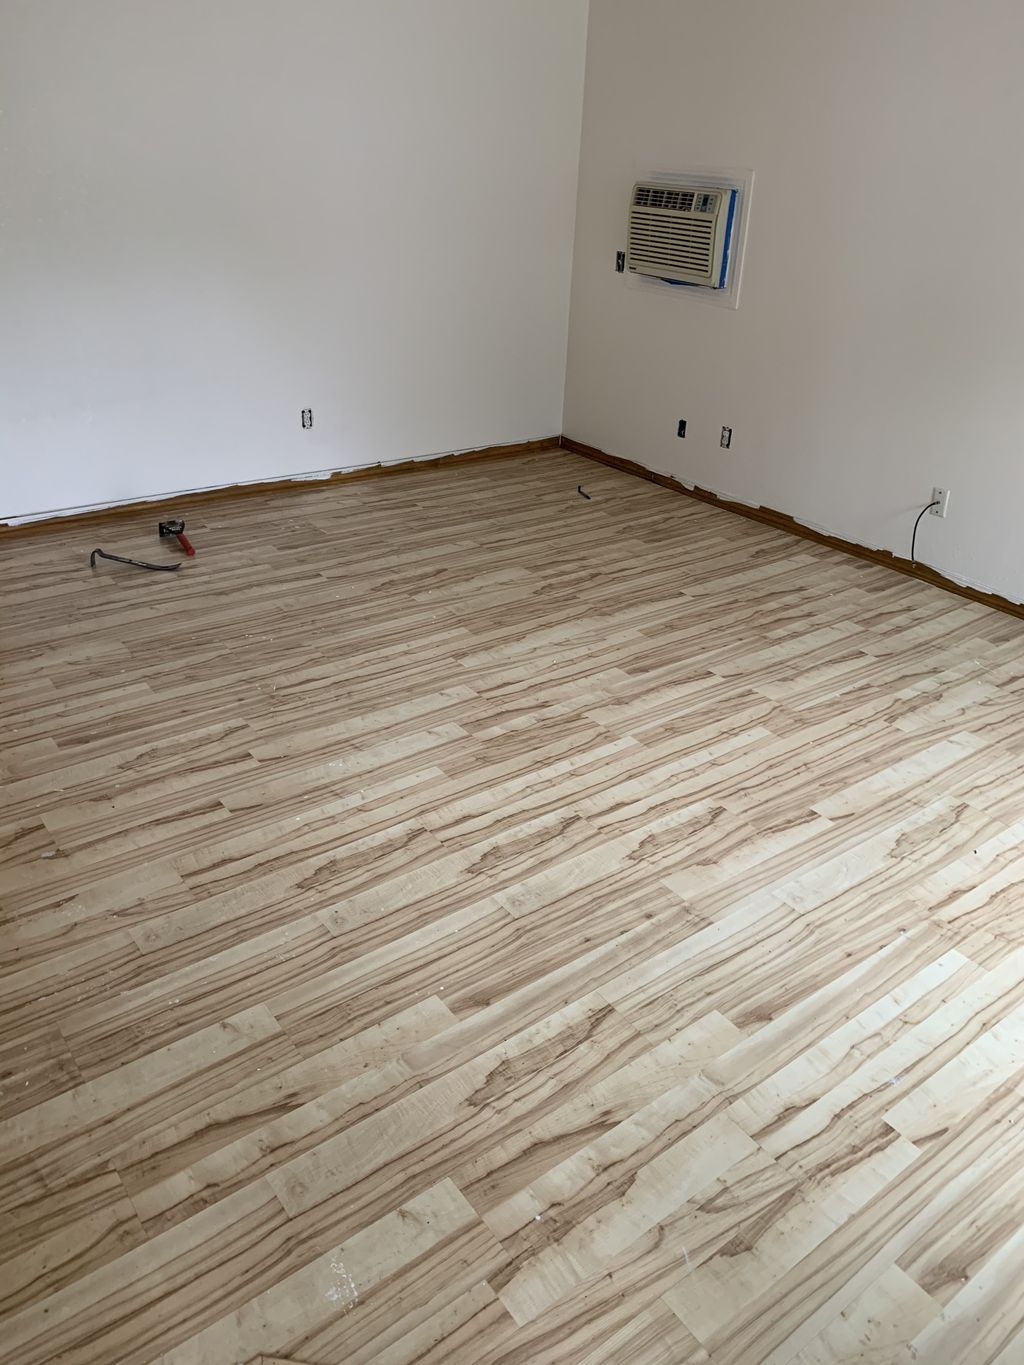 Full home flooring and trim upgrade